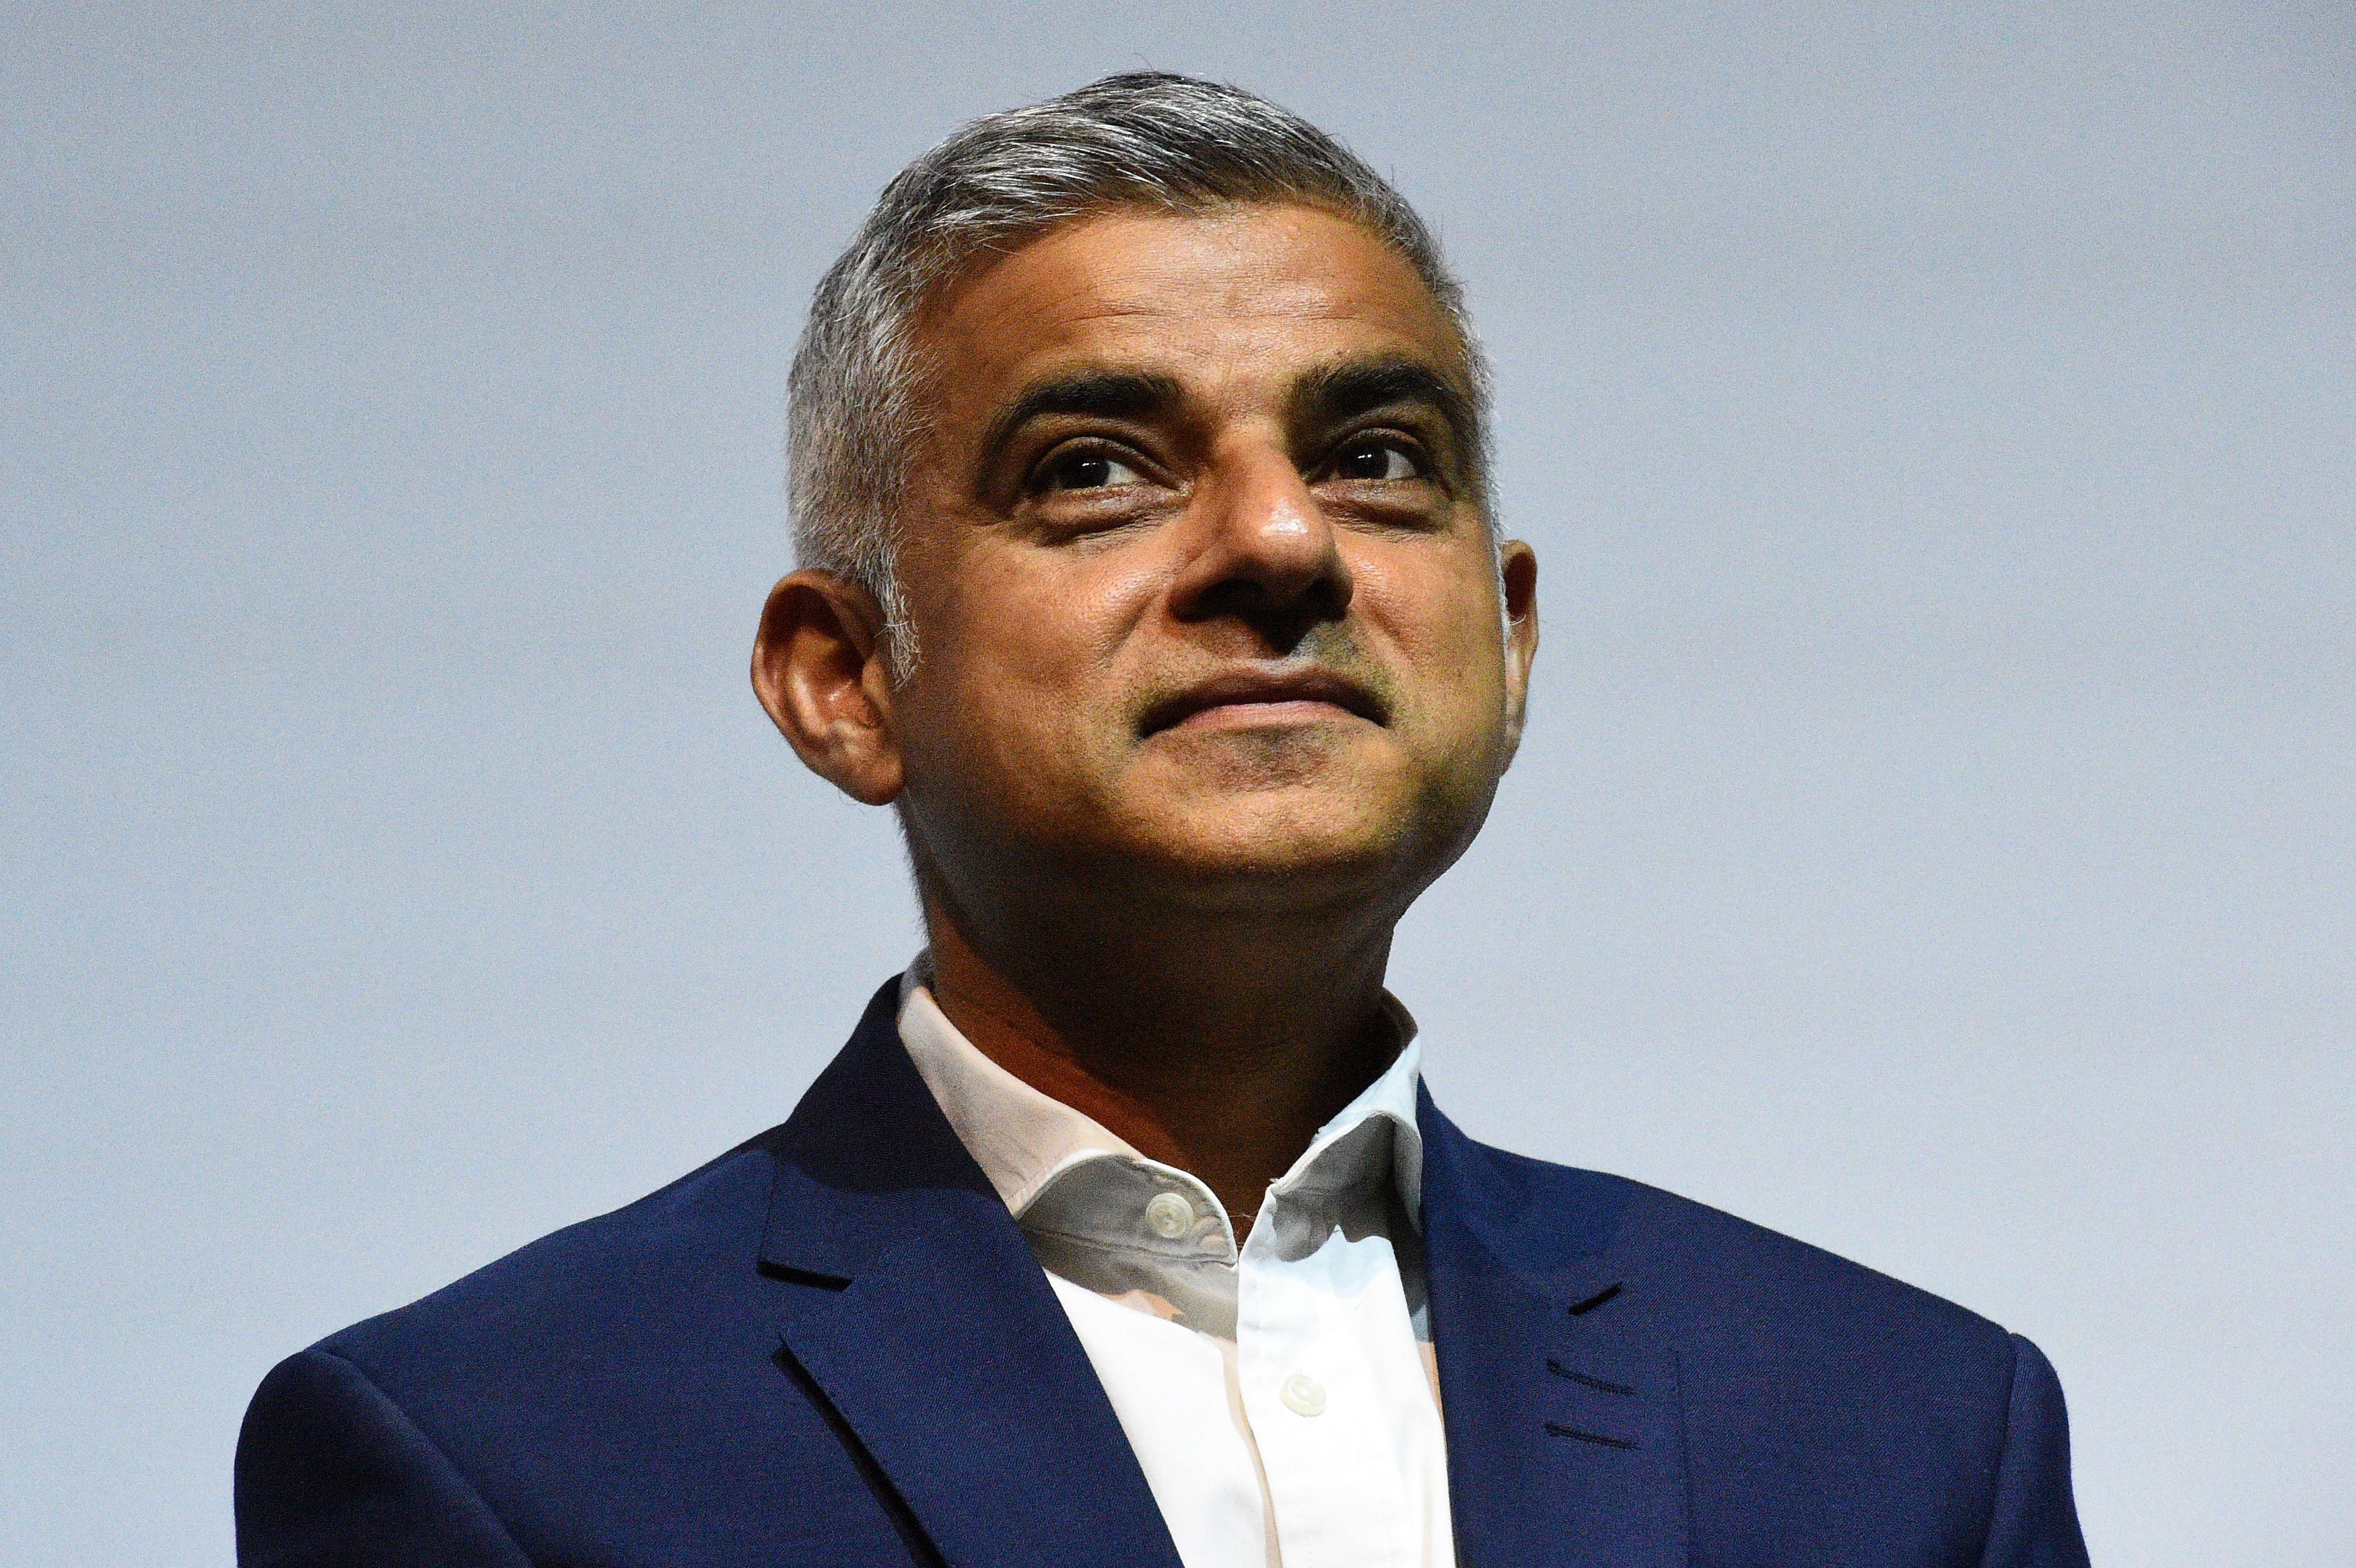 Sadiq Khan Says Options For Brexit Now So Bad We Need A Second Referendum